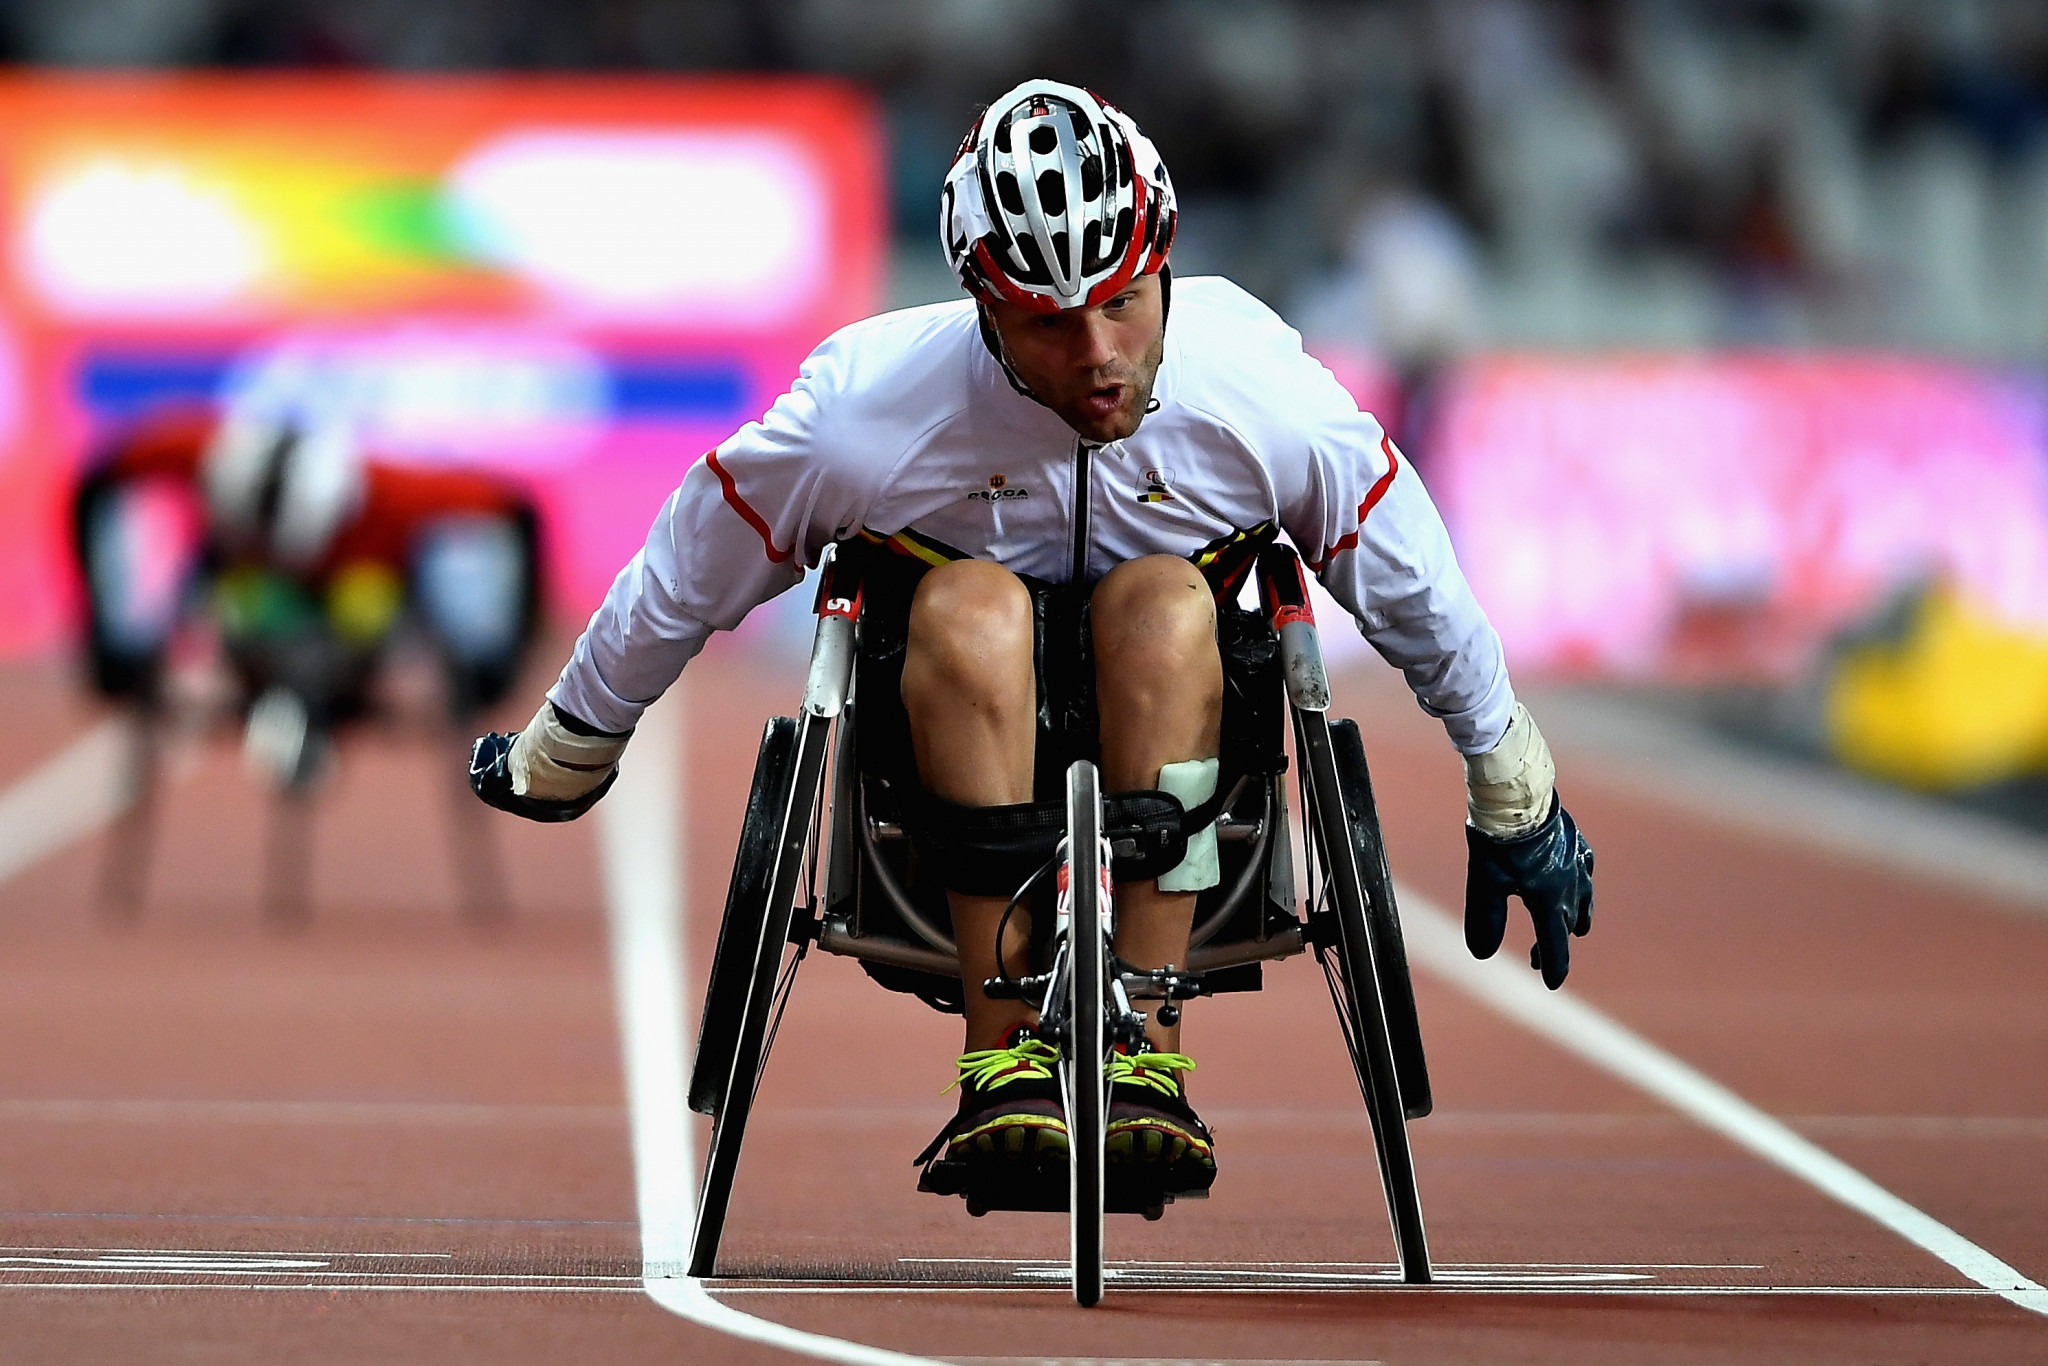 Belgium's Genyn breaks another world record as action concludes at World Para Athletics Grand Prix in Nottwil